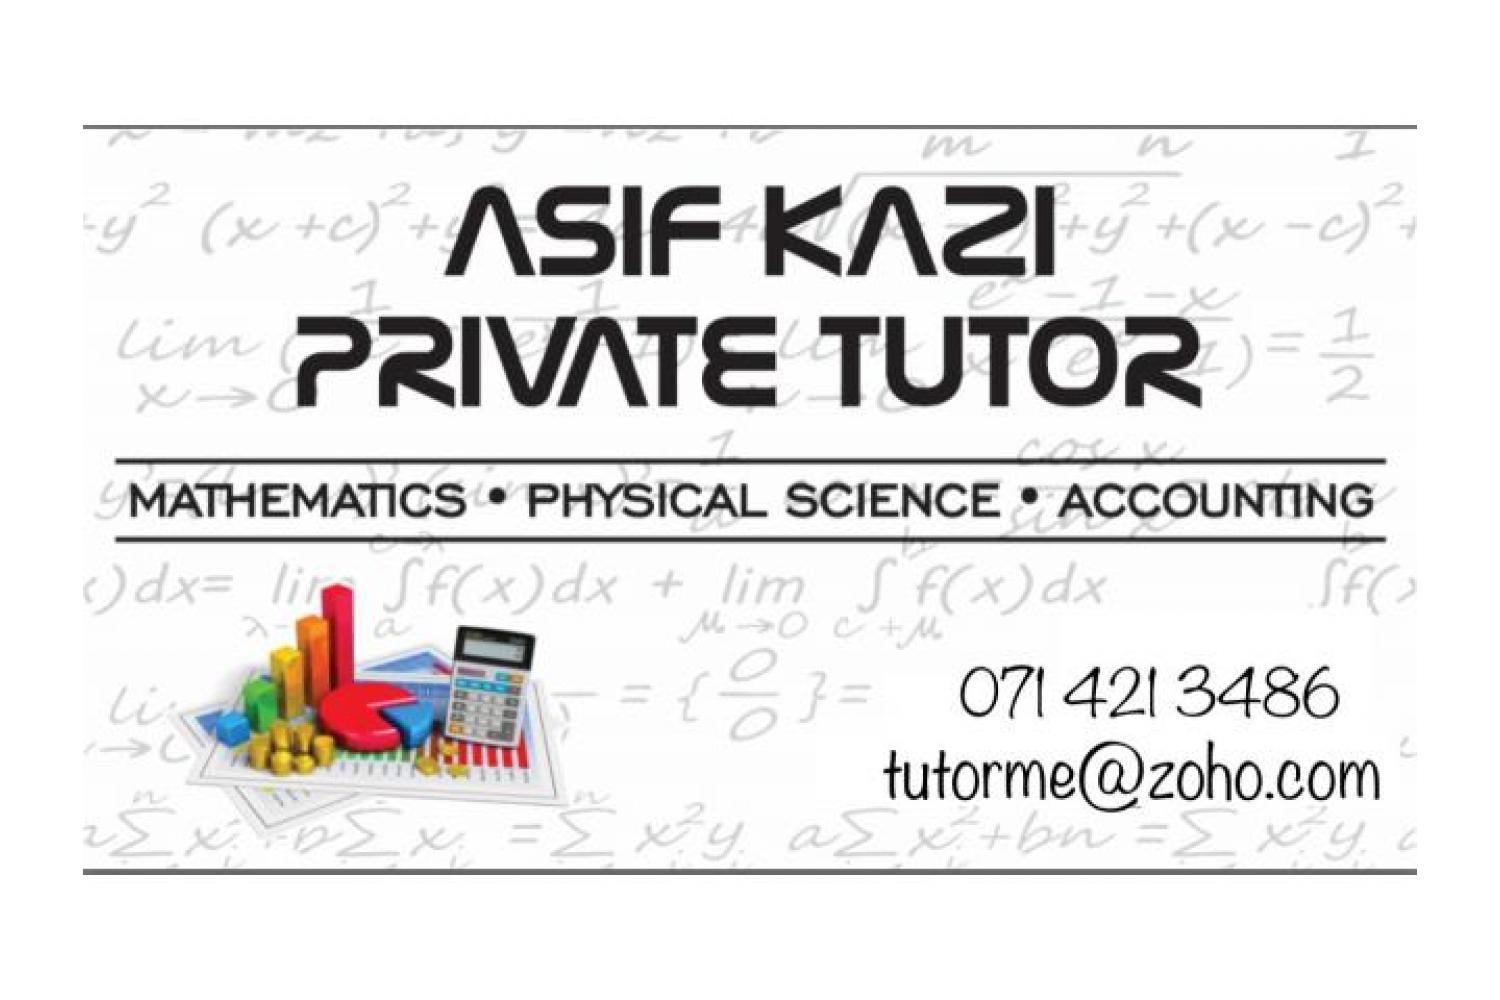 Maths Science and Accounting tutoring